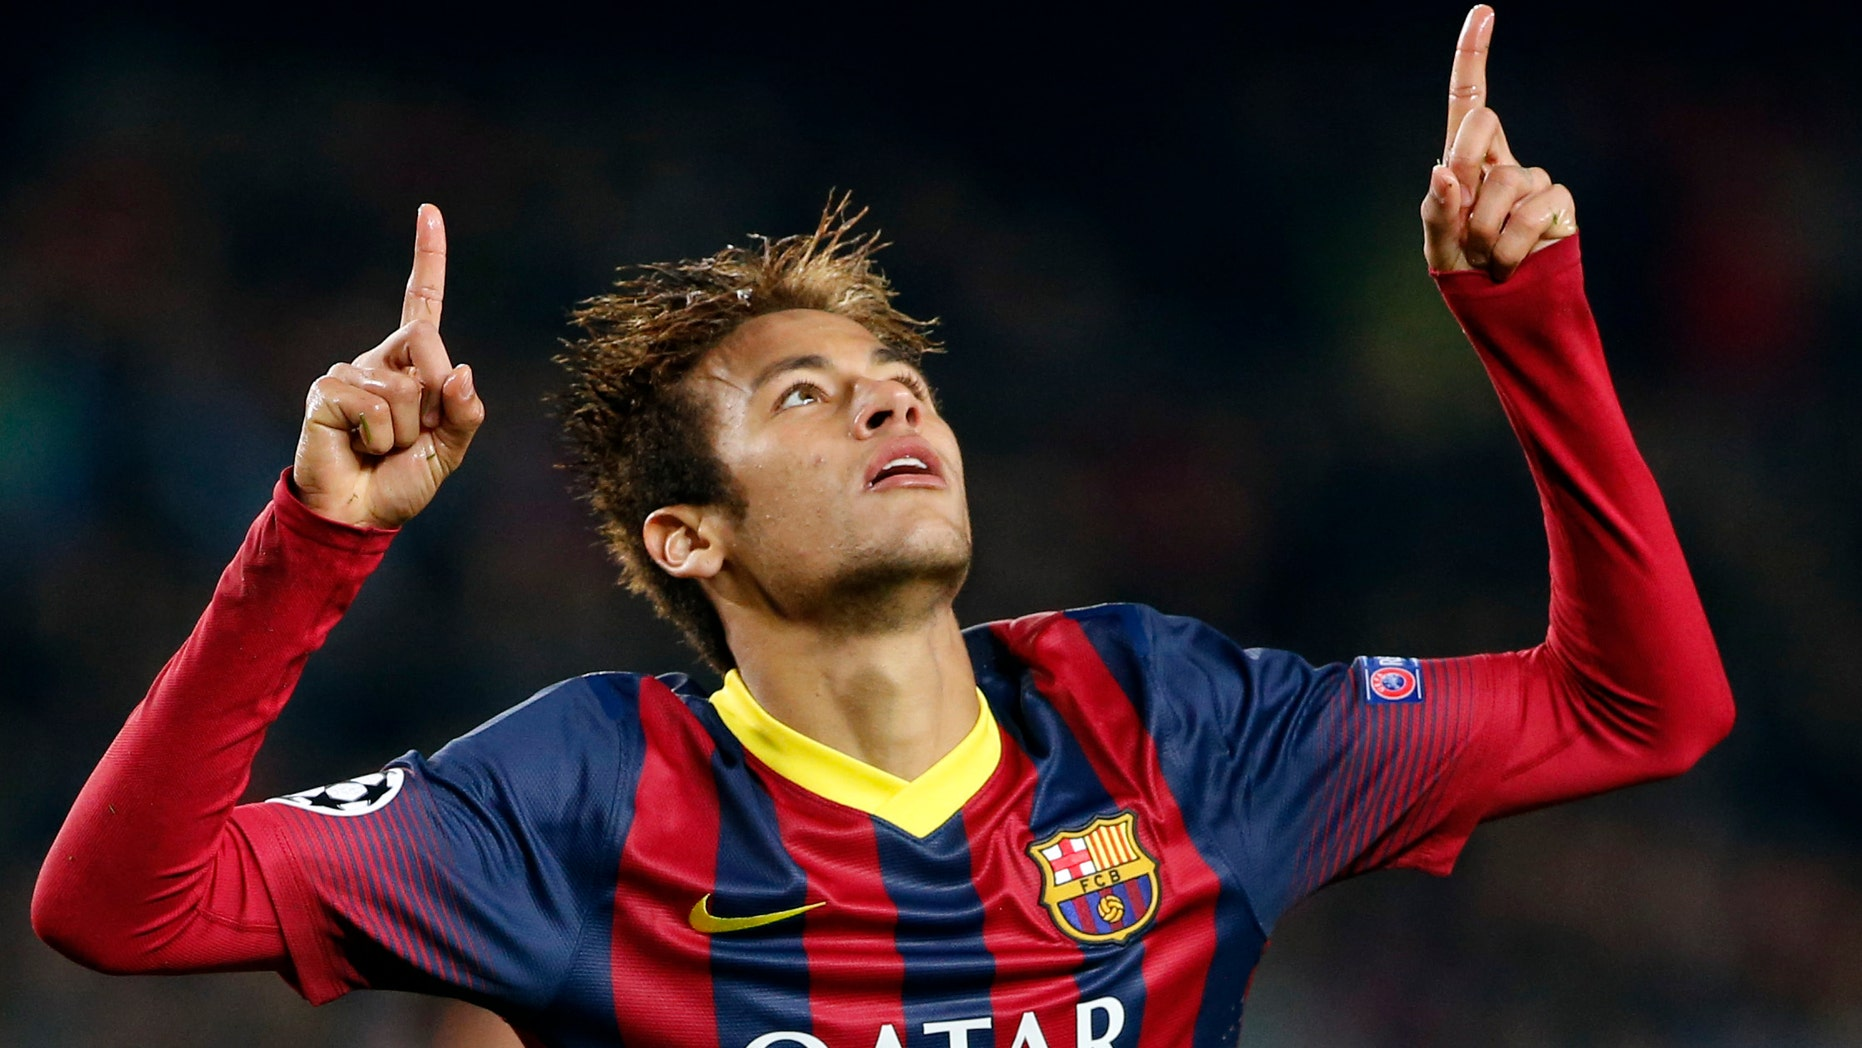 Barcelona's Neymar celebrates after scoring his side's fourth goal during a Group H Champions League soccer match between FC Barcelona and Celtic FC at the Camp Nou stadium in Barcelona, Spain, Wednesday Dec. 11, 2013.(AP Photo/Emilio Morenatti)